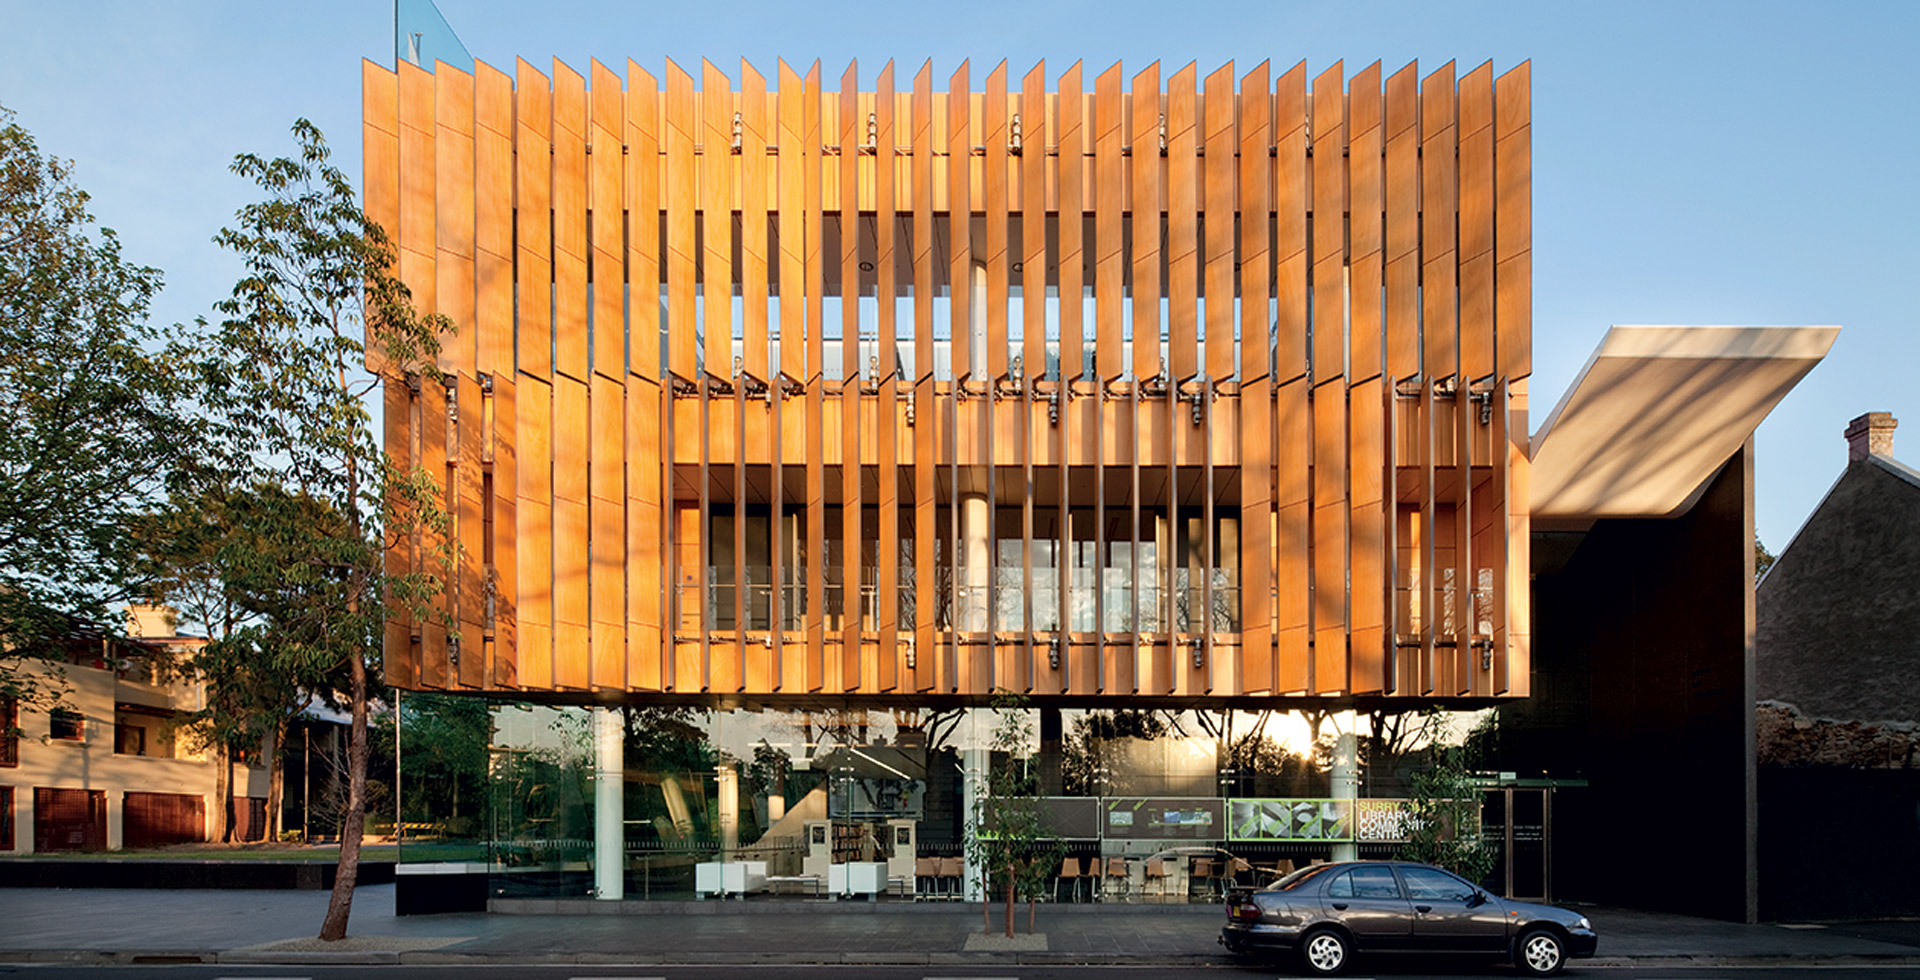 Surry Hills Neighbourhood Centre designed by fjmt